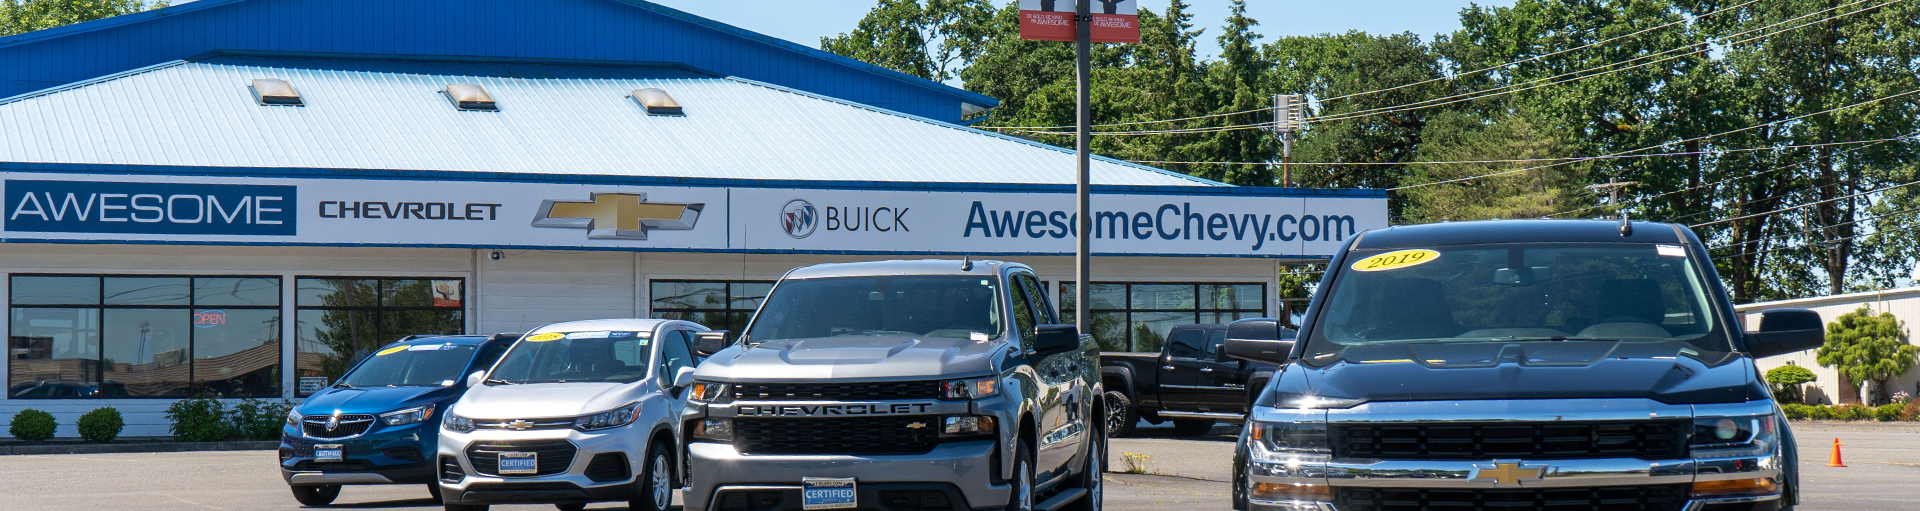 Awesome Chevrolet Buick Service Department